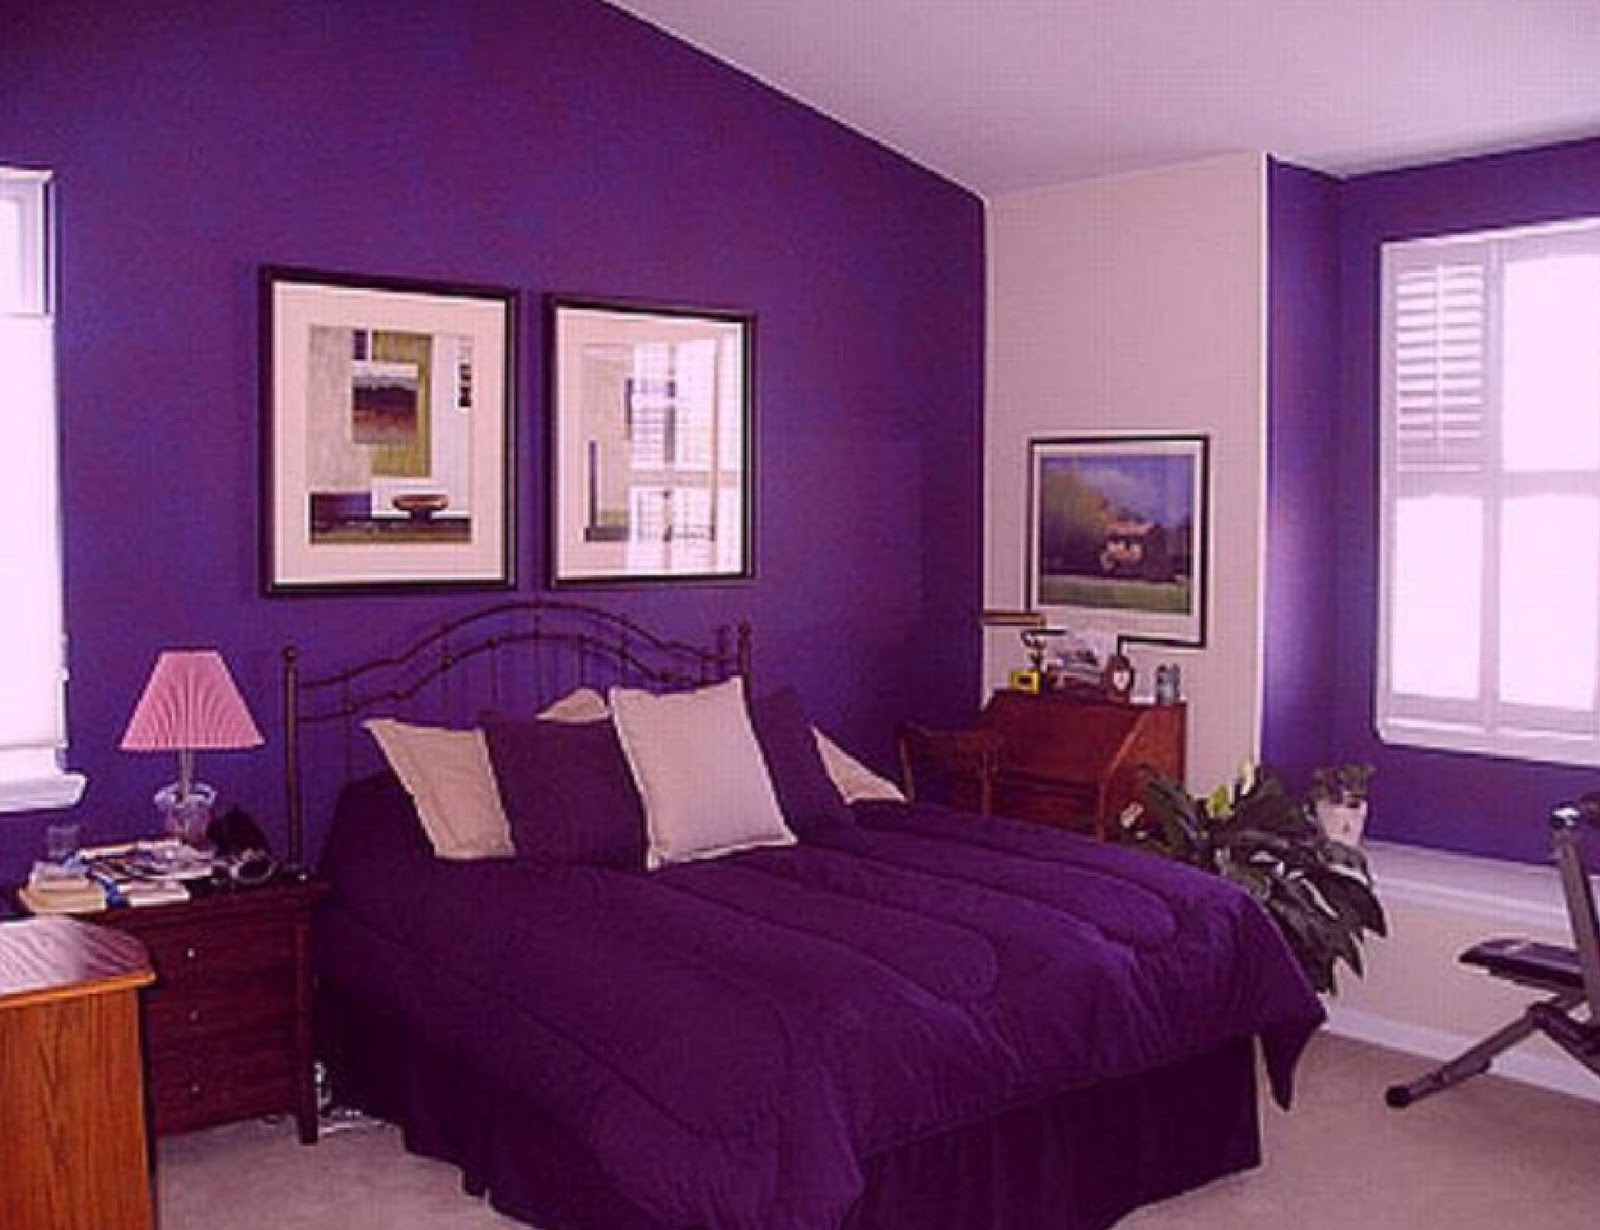 hot purple bedroom designs - Hot Bedroom Designs